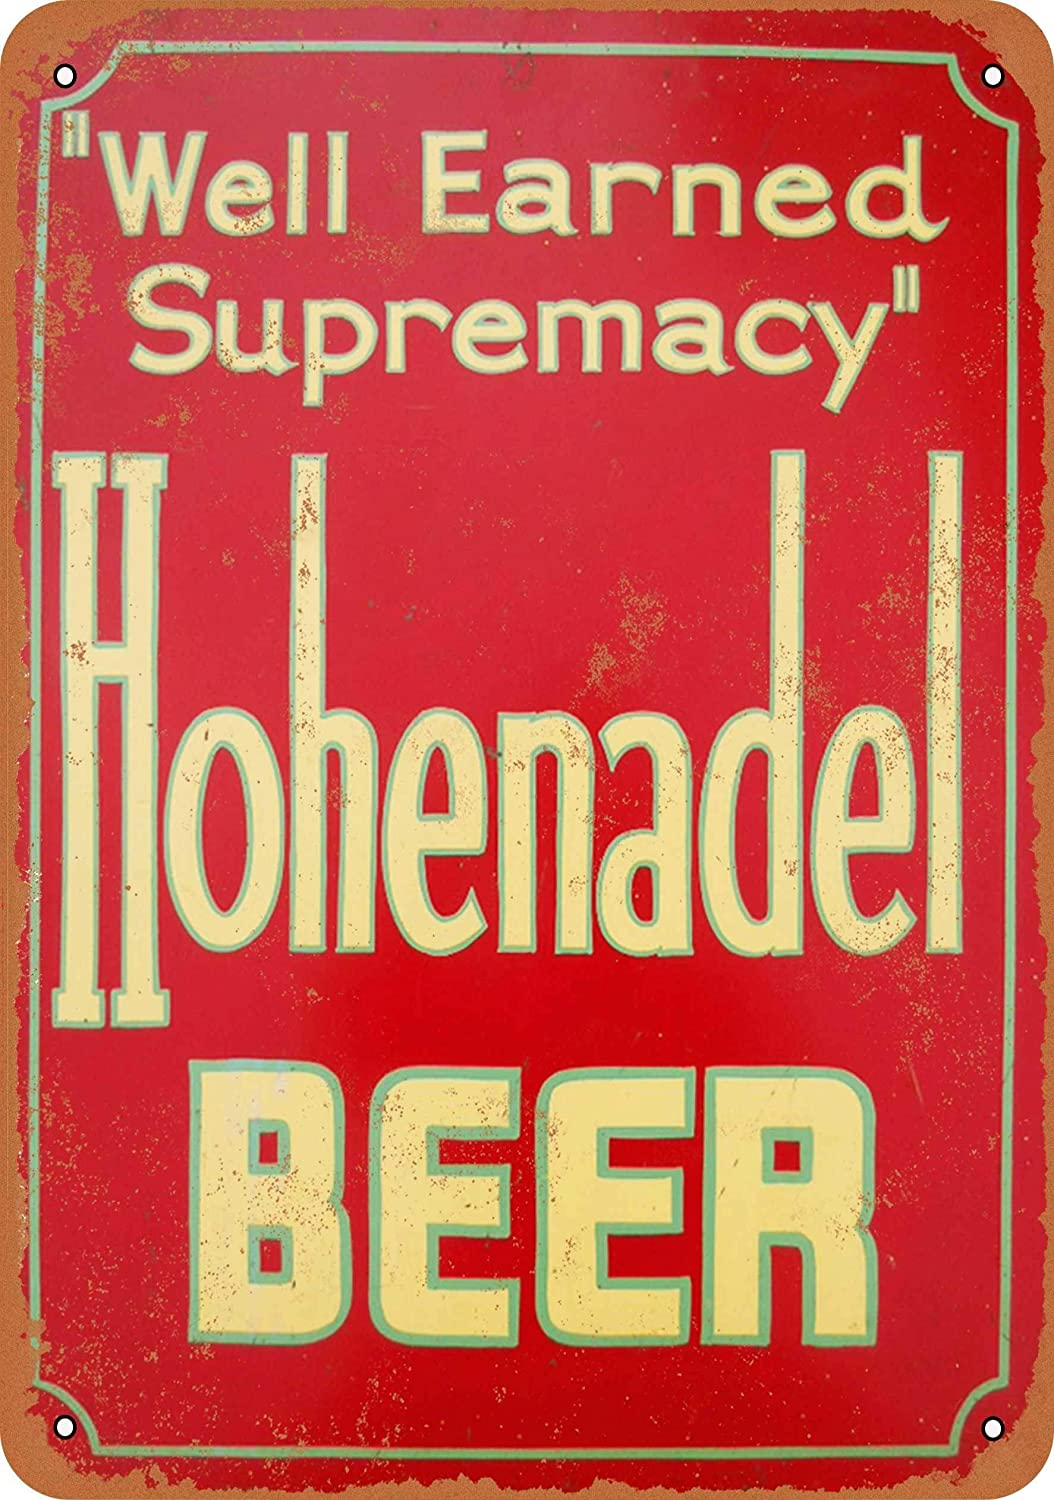 Yousigns Hohenadel Beer Metal Tin Sign 12 X 8 Inches Retro Vintage Decor